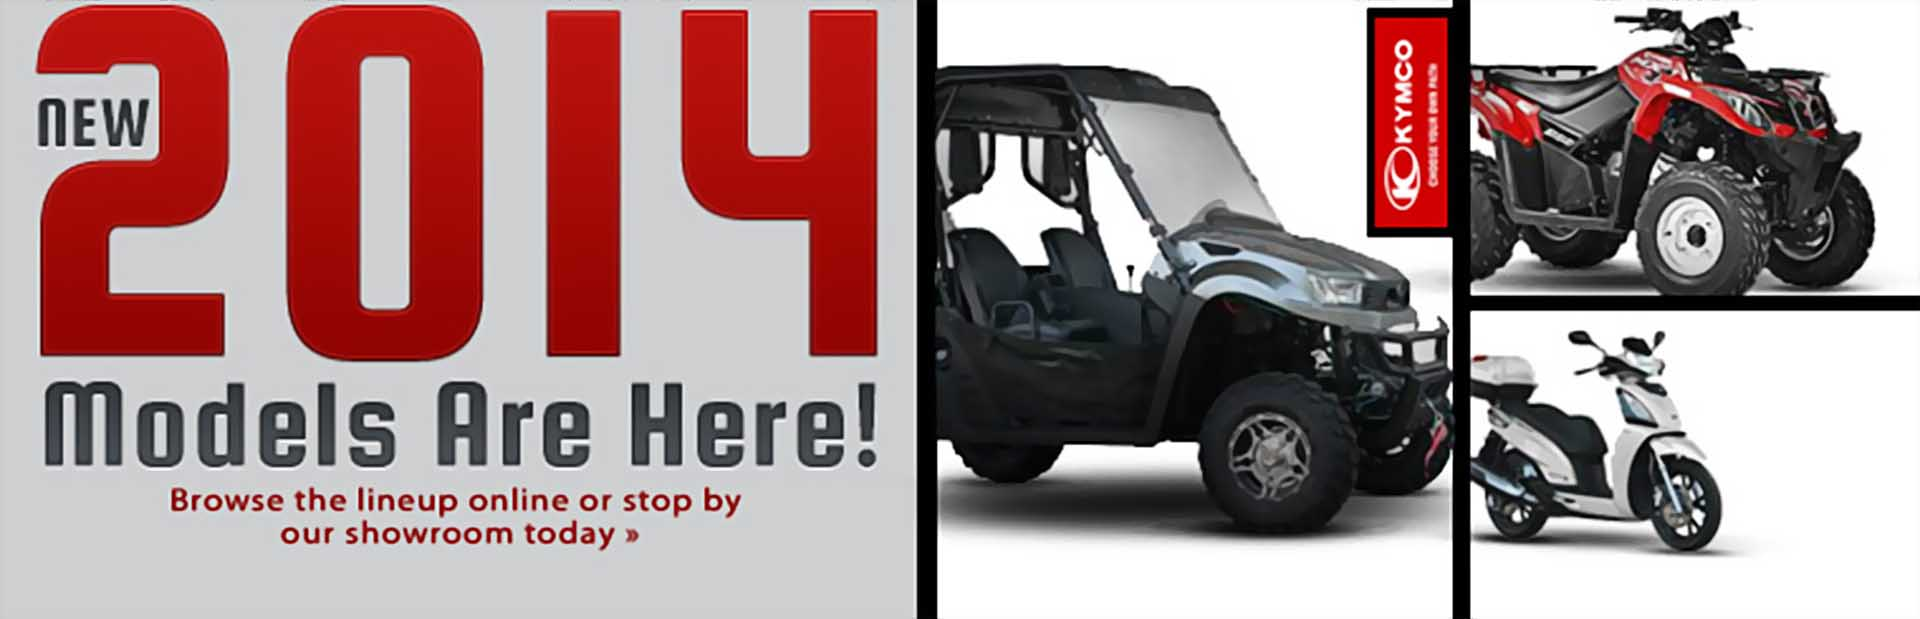 View the 2014 KYMCO lineup.